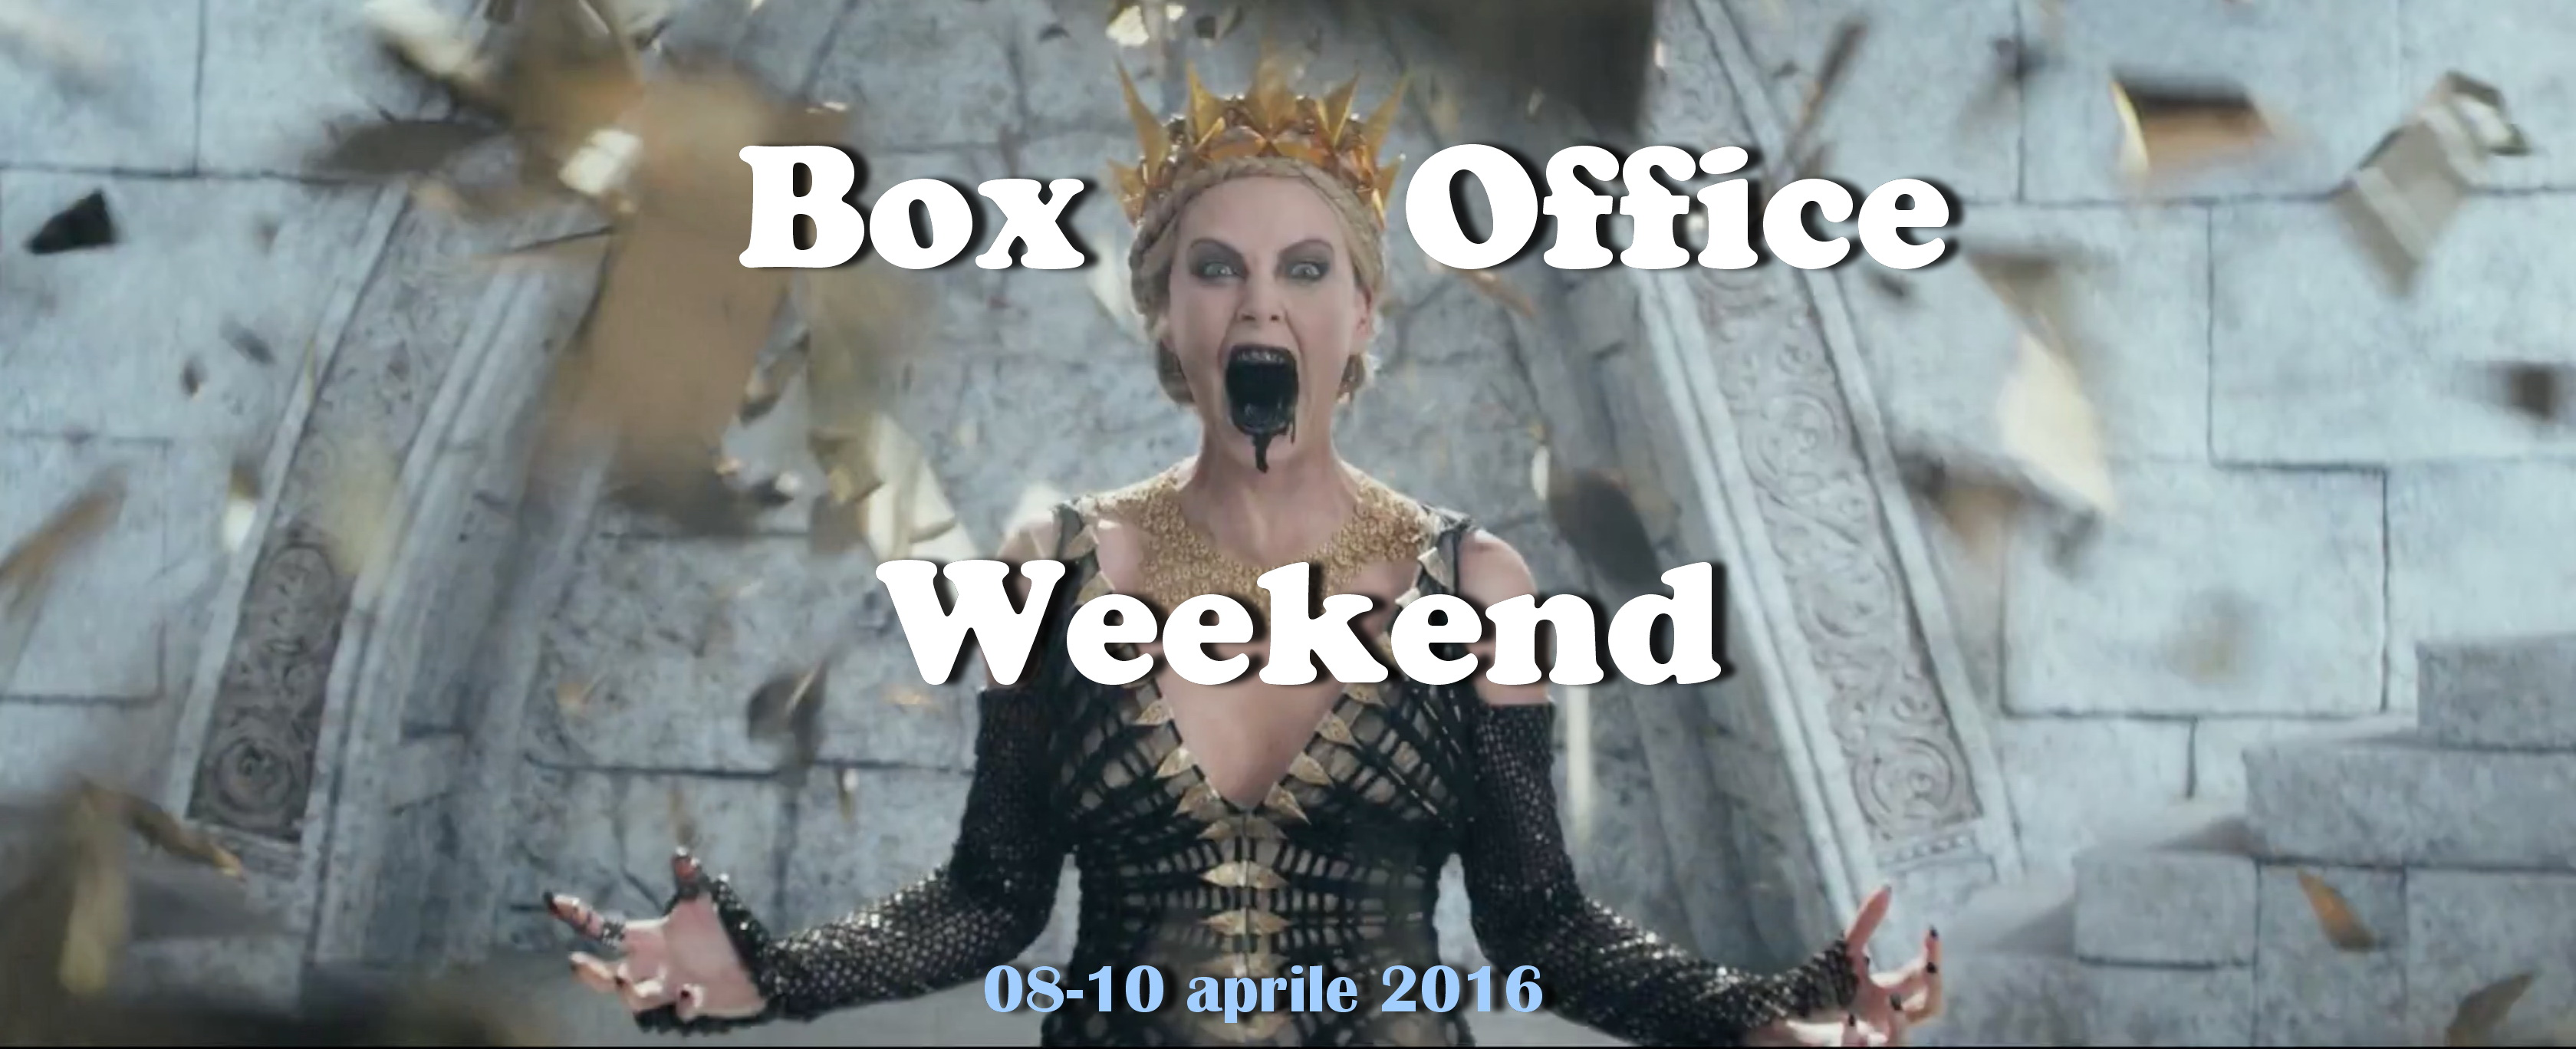 box office weekend batman v superman annientato da il. Black Bedroom Furniture Sets. Home Design Ideas